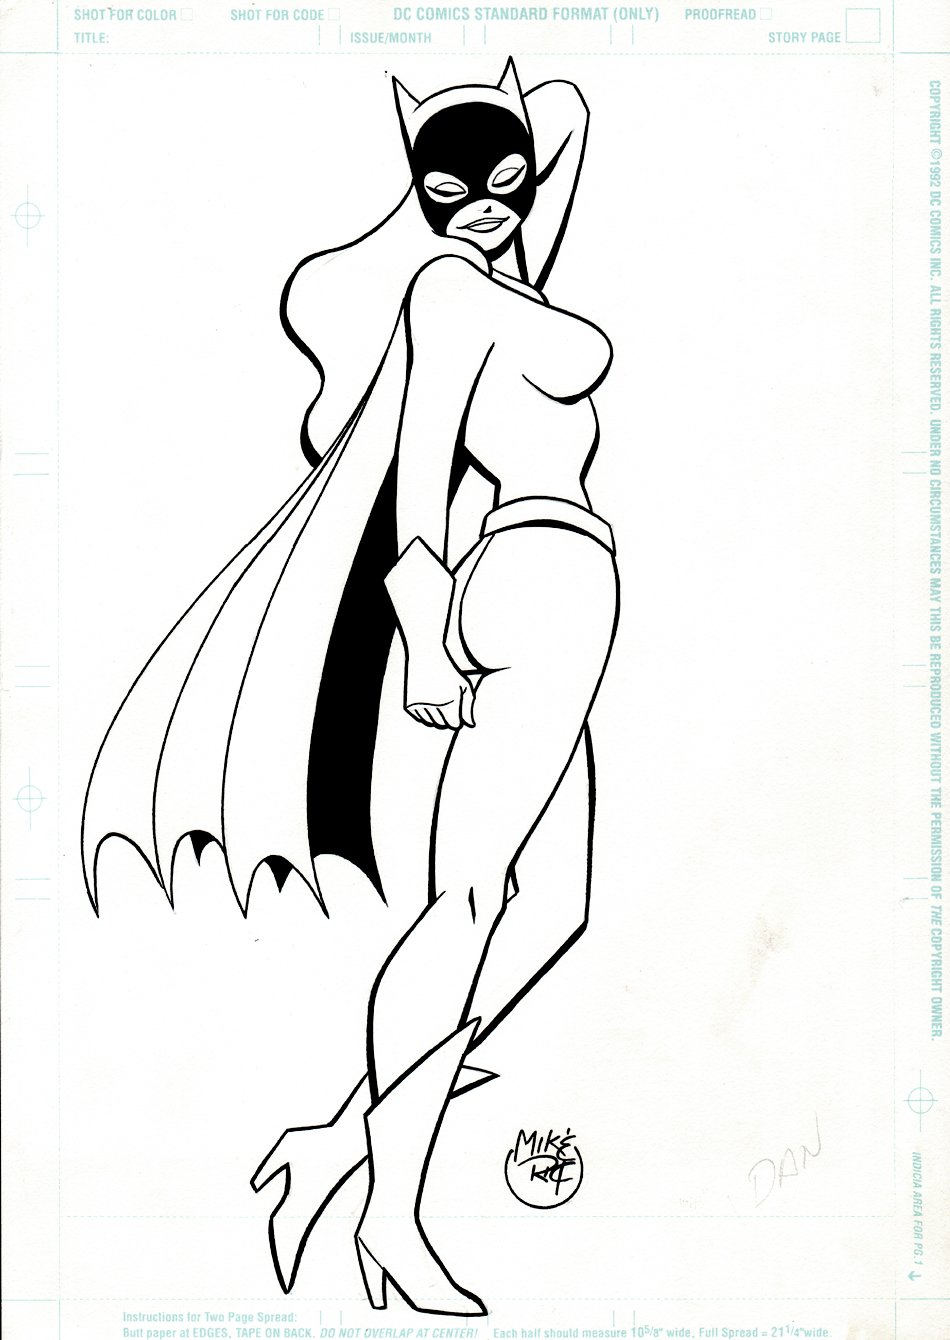 Batgirl Published Pinup For Letters Pages In Batman Adventures Comic Books (1990s)